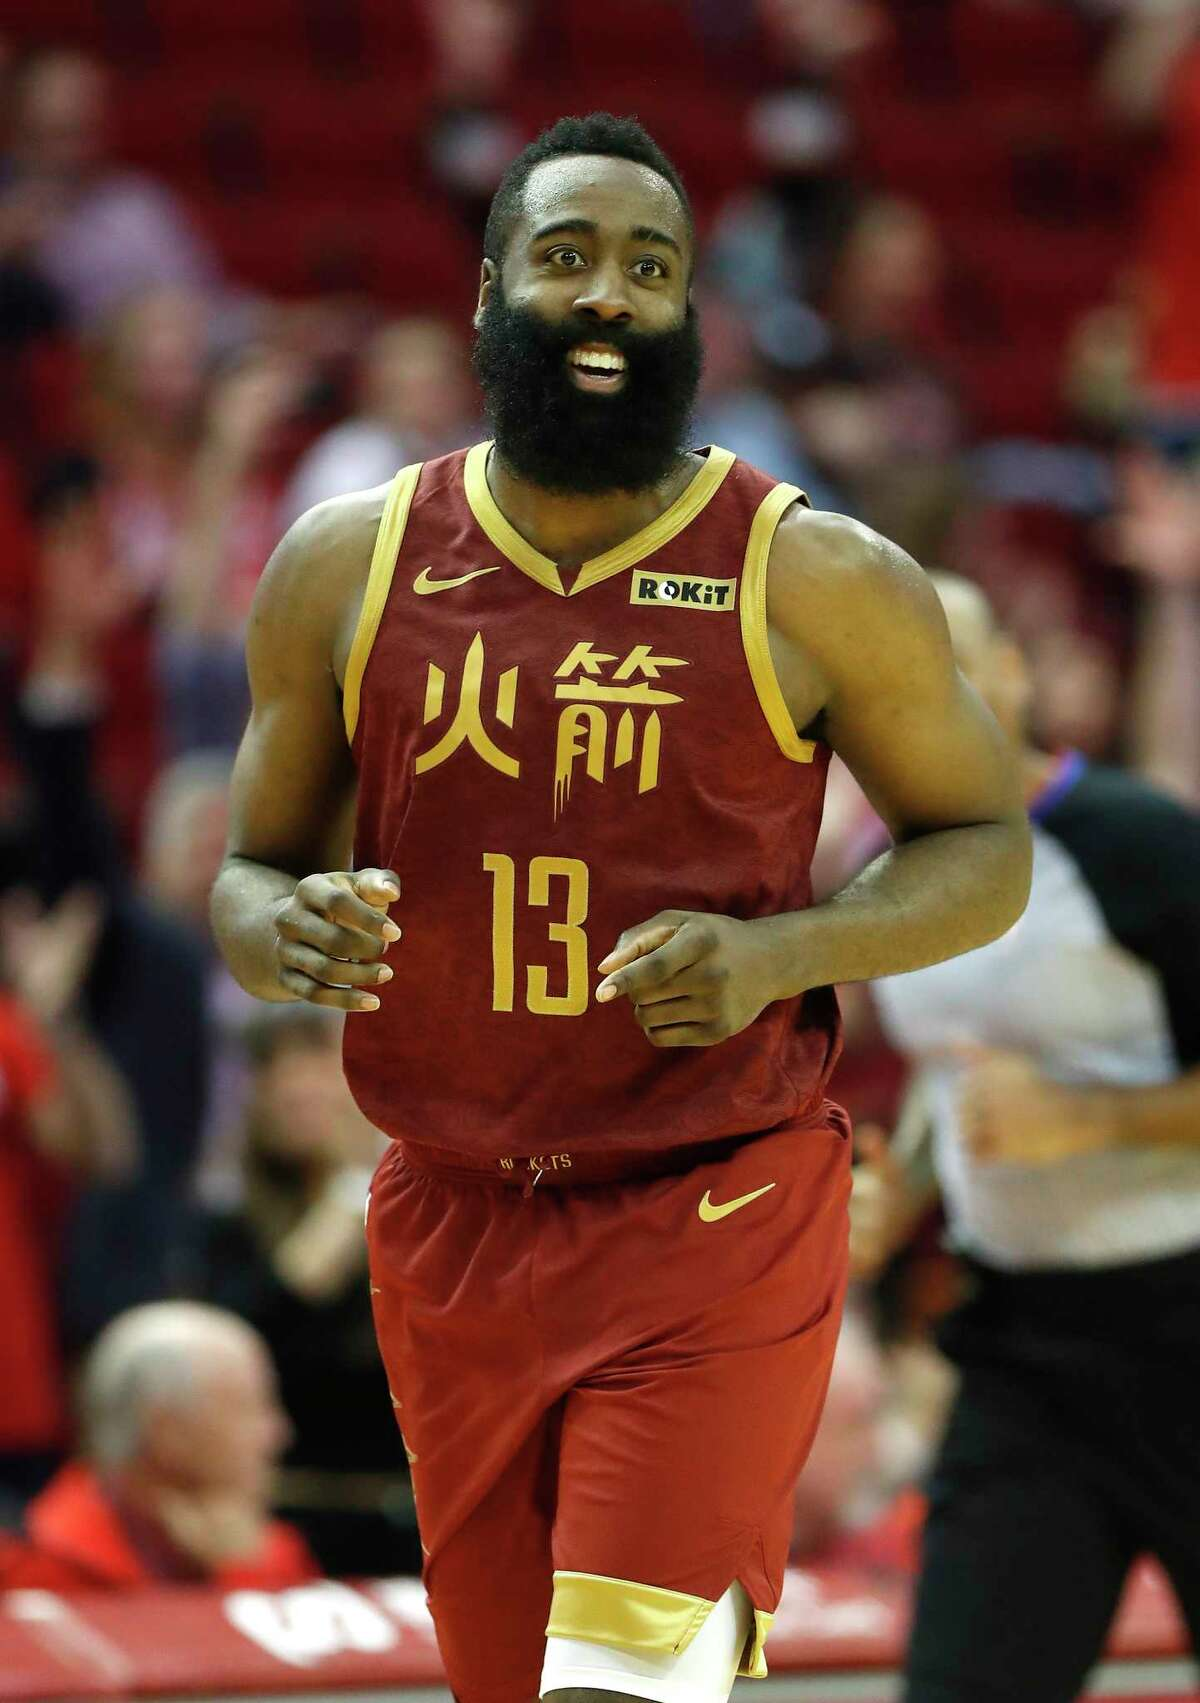 Houston Rockets guard James Harden (13) reacts after a three-pointer during the second half of an NBA game at the Toyota Center, Monday, Feb. 11, 2019, in Houston.